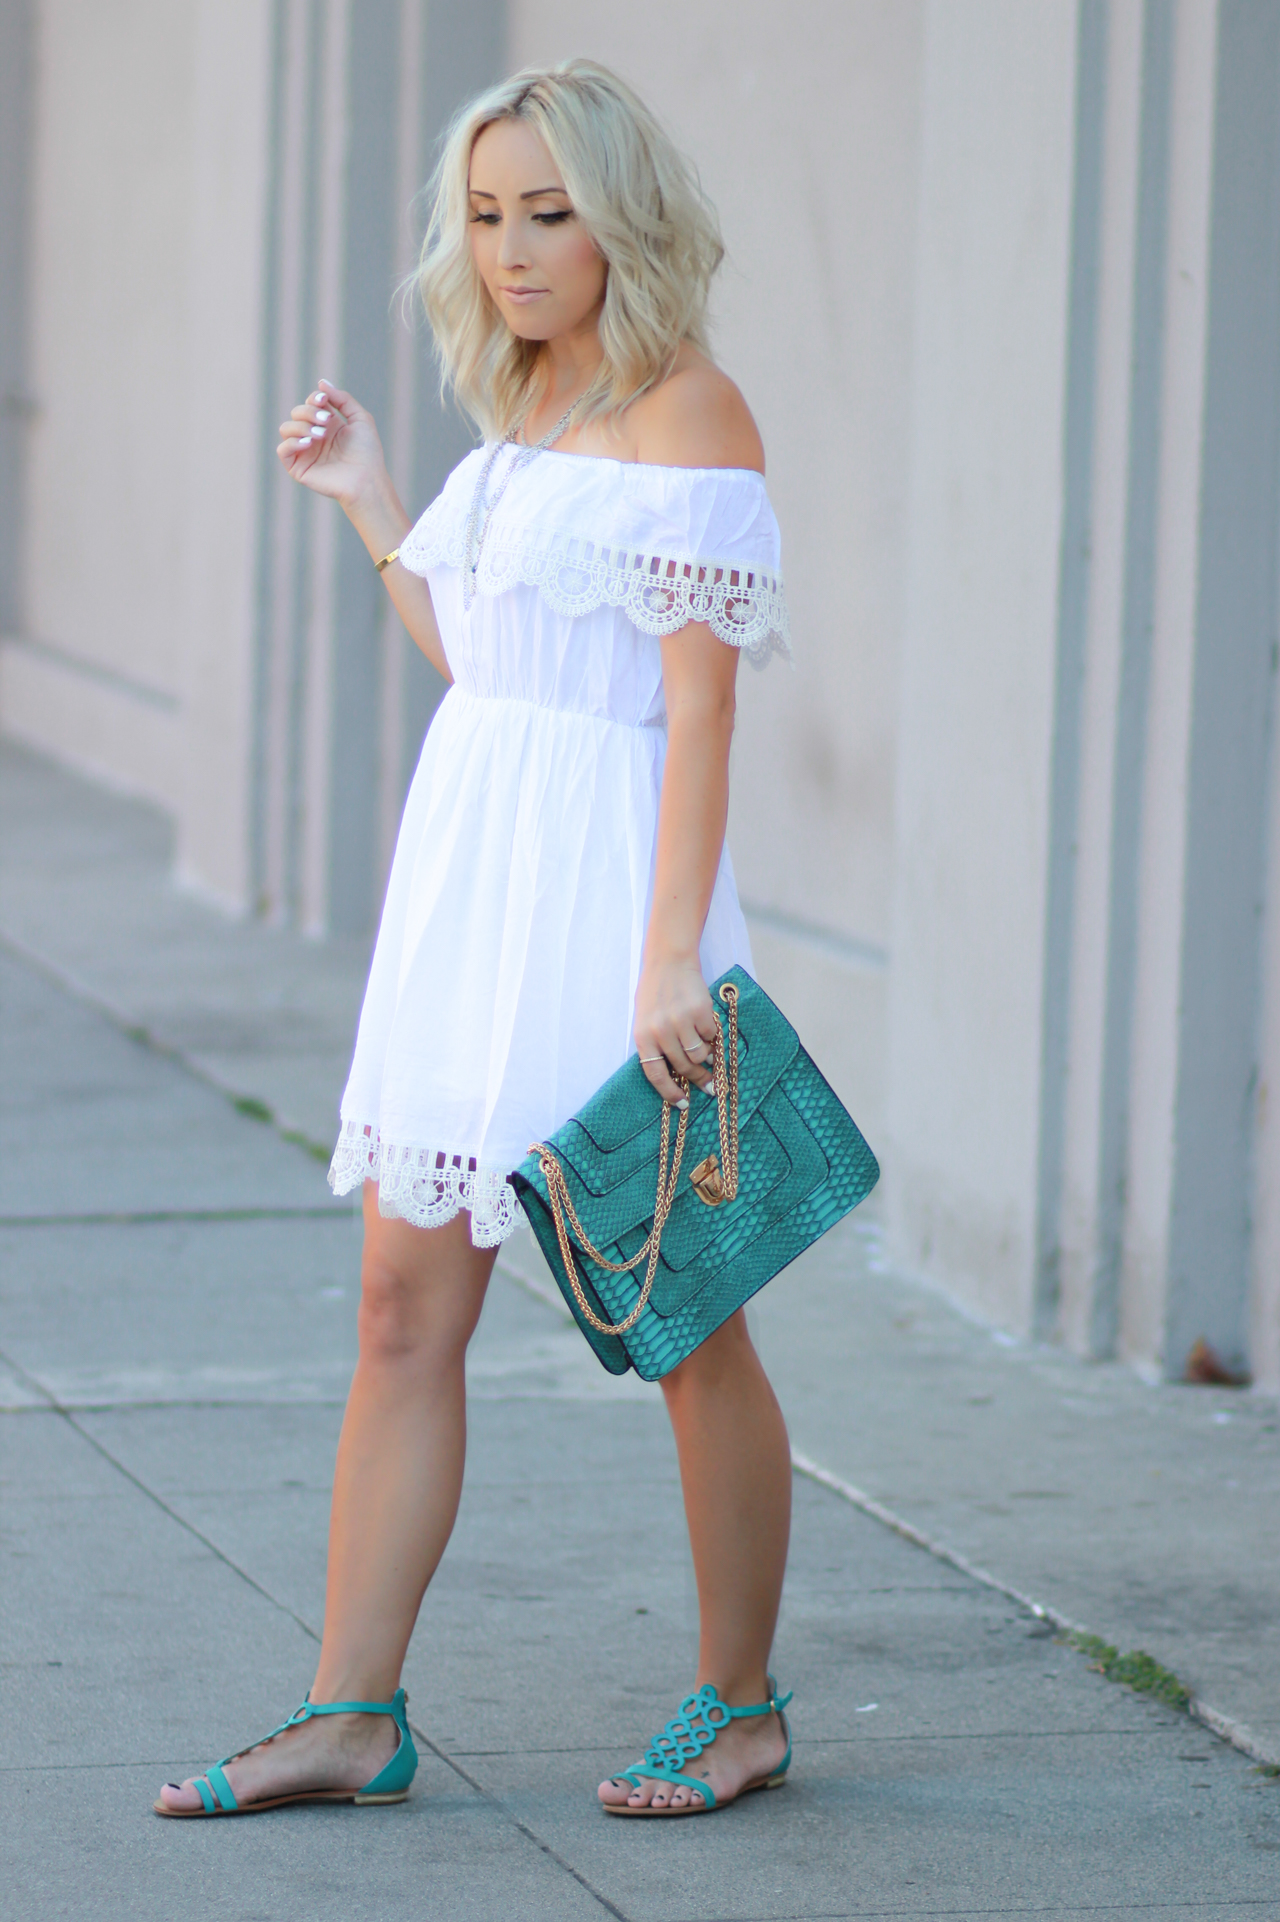 White Off The Shoulder Dress | StyledbyBlondie.com